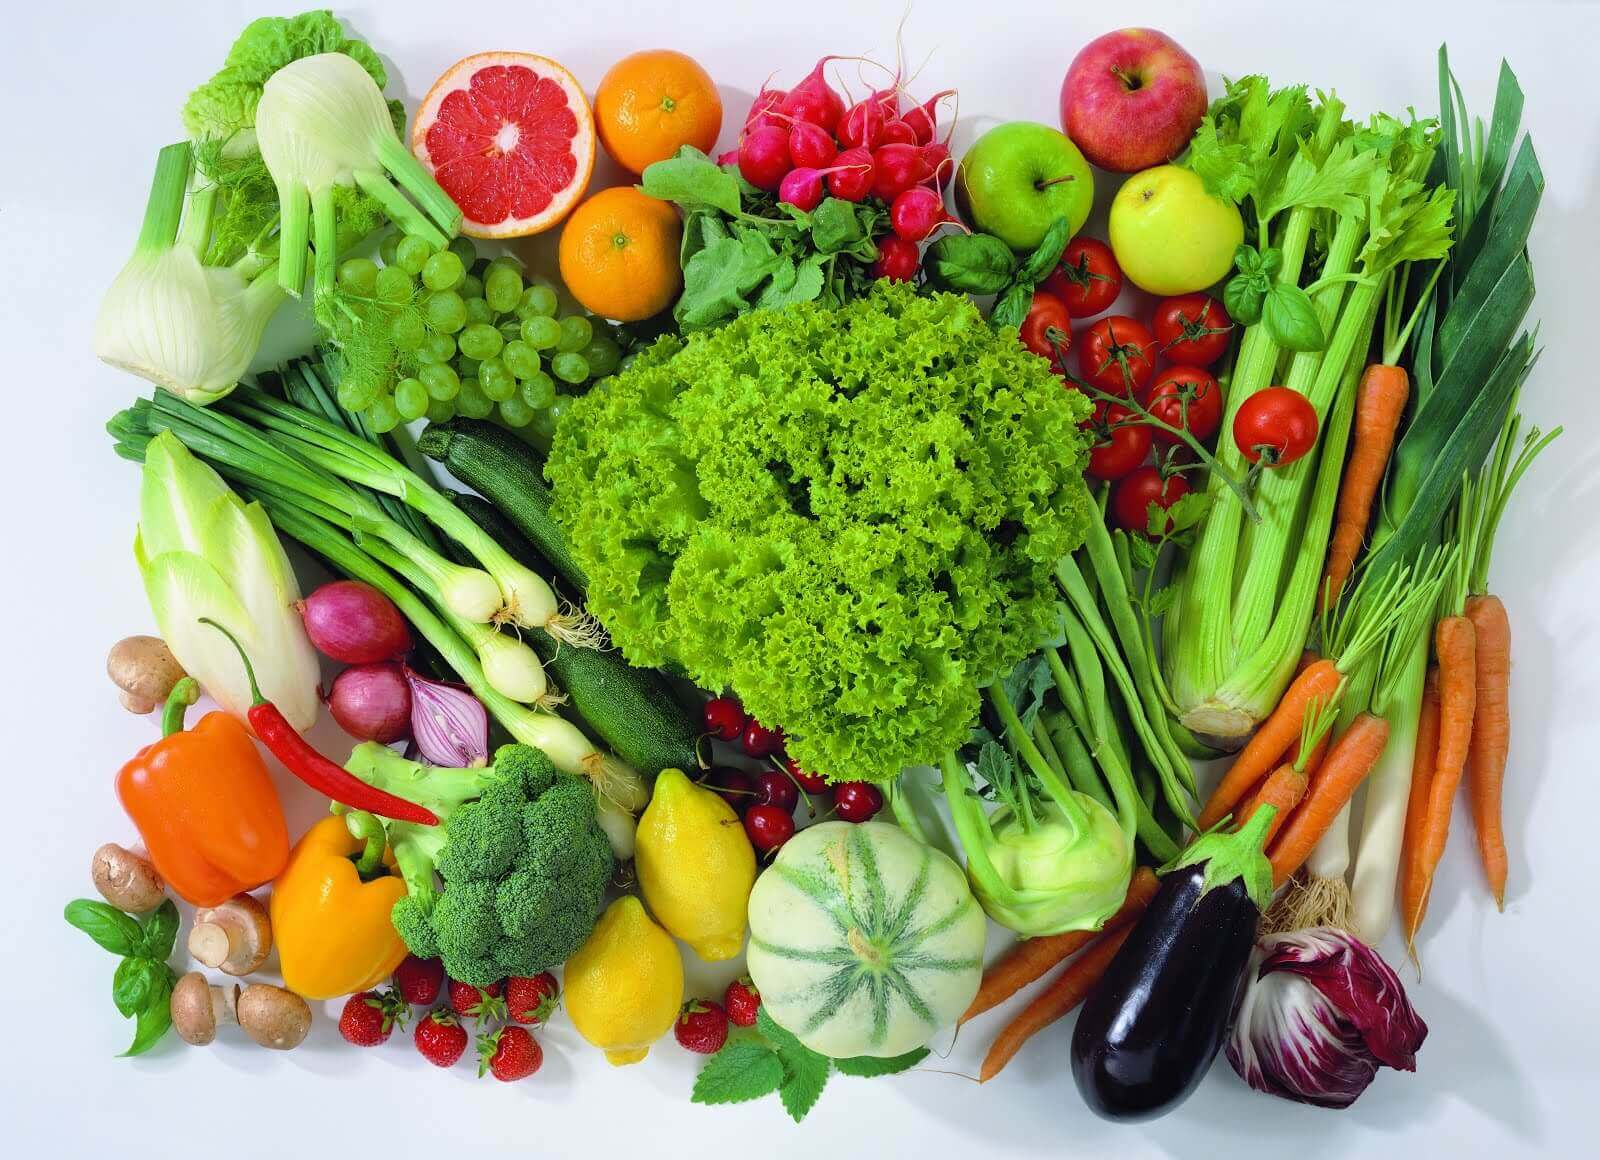 Fruit and vegetables to keep Arteries Healthy